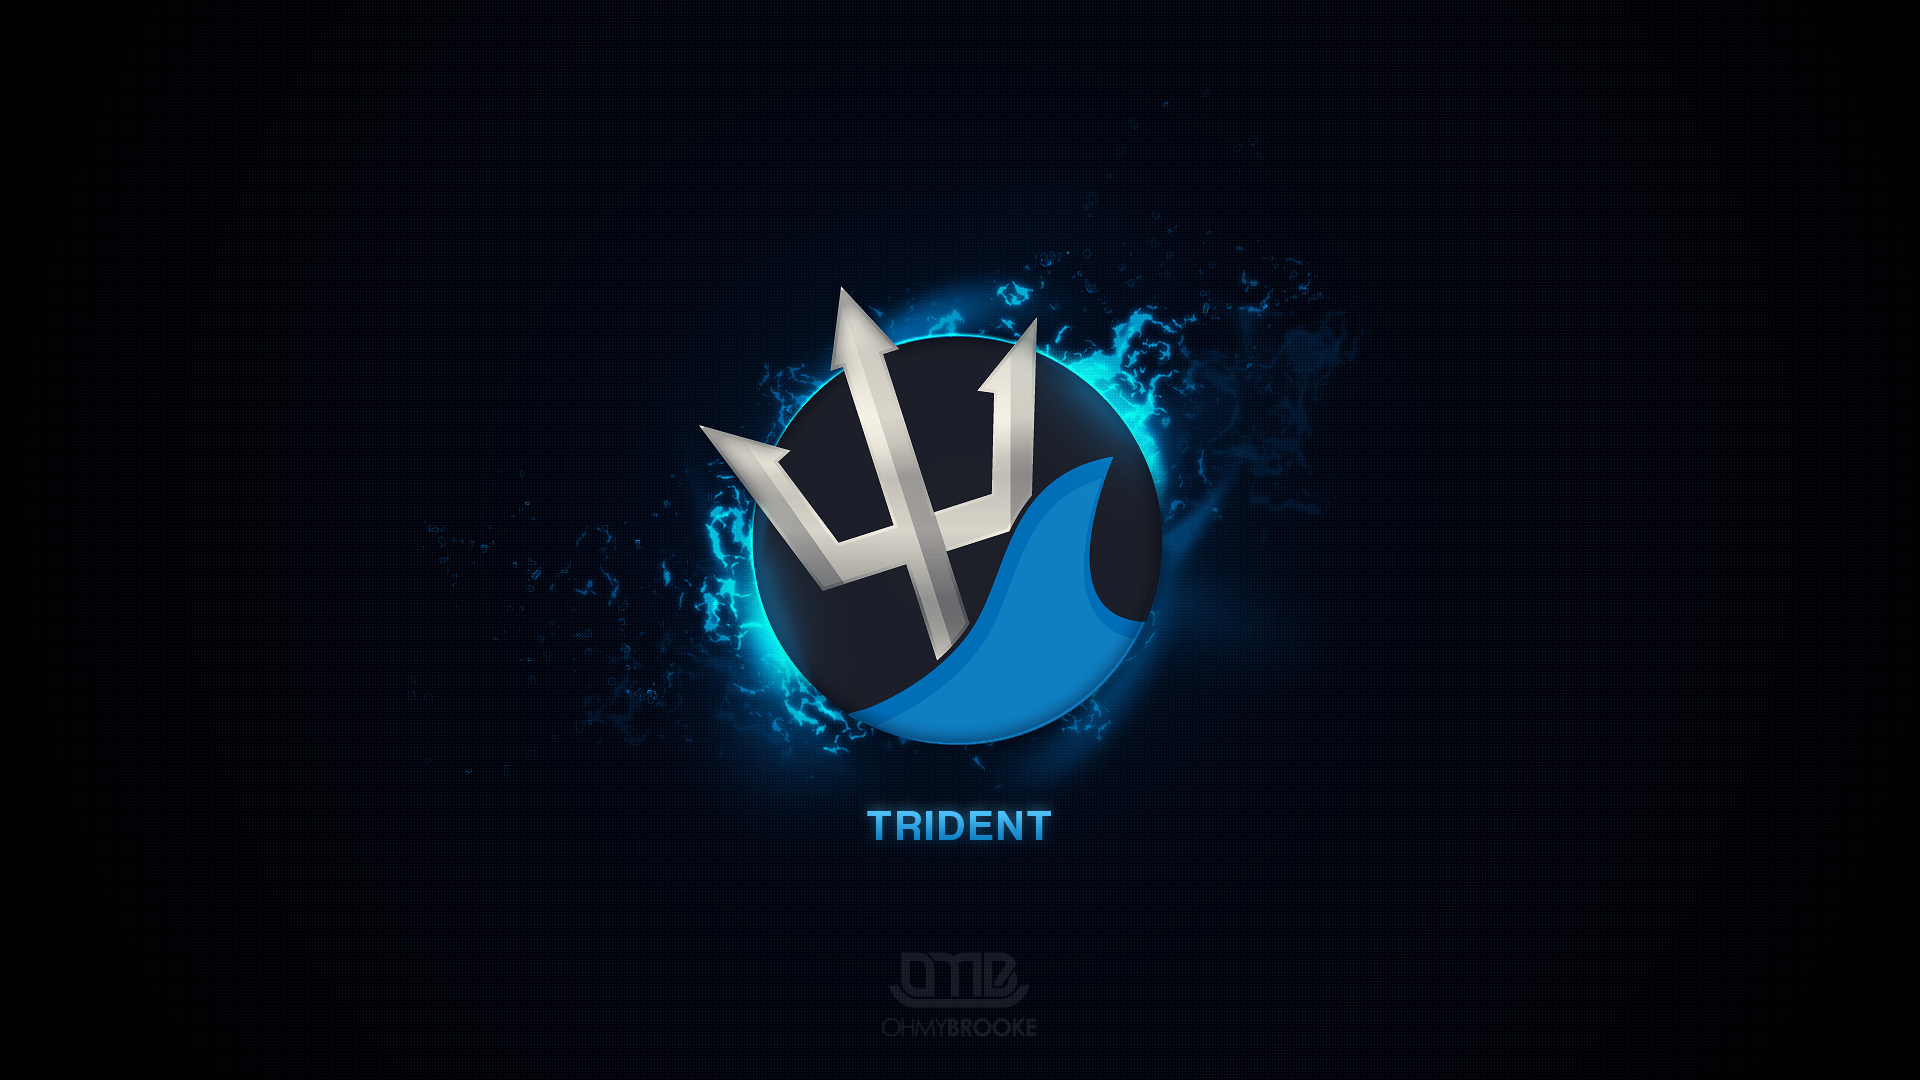 Trident Wallpaper By Ohmybrooke On Deviantart